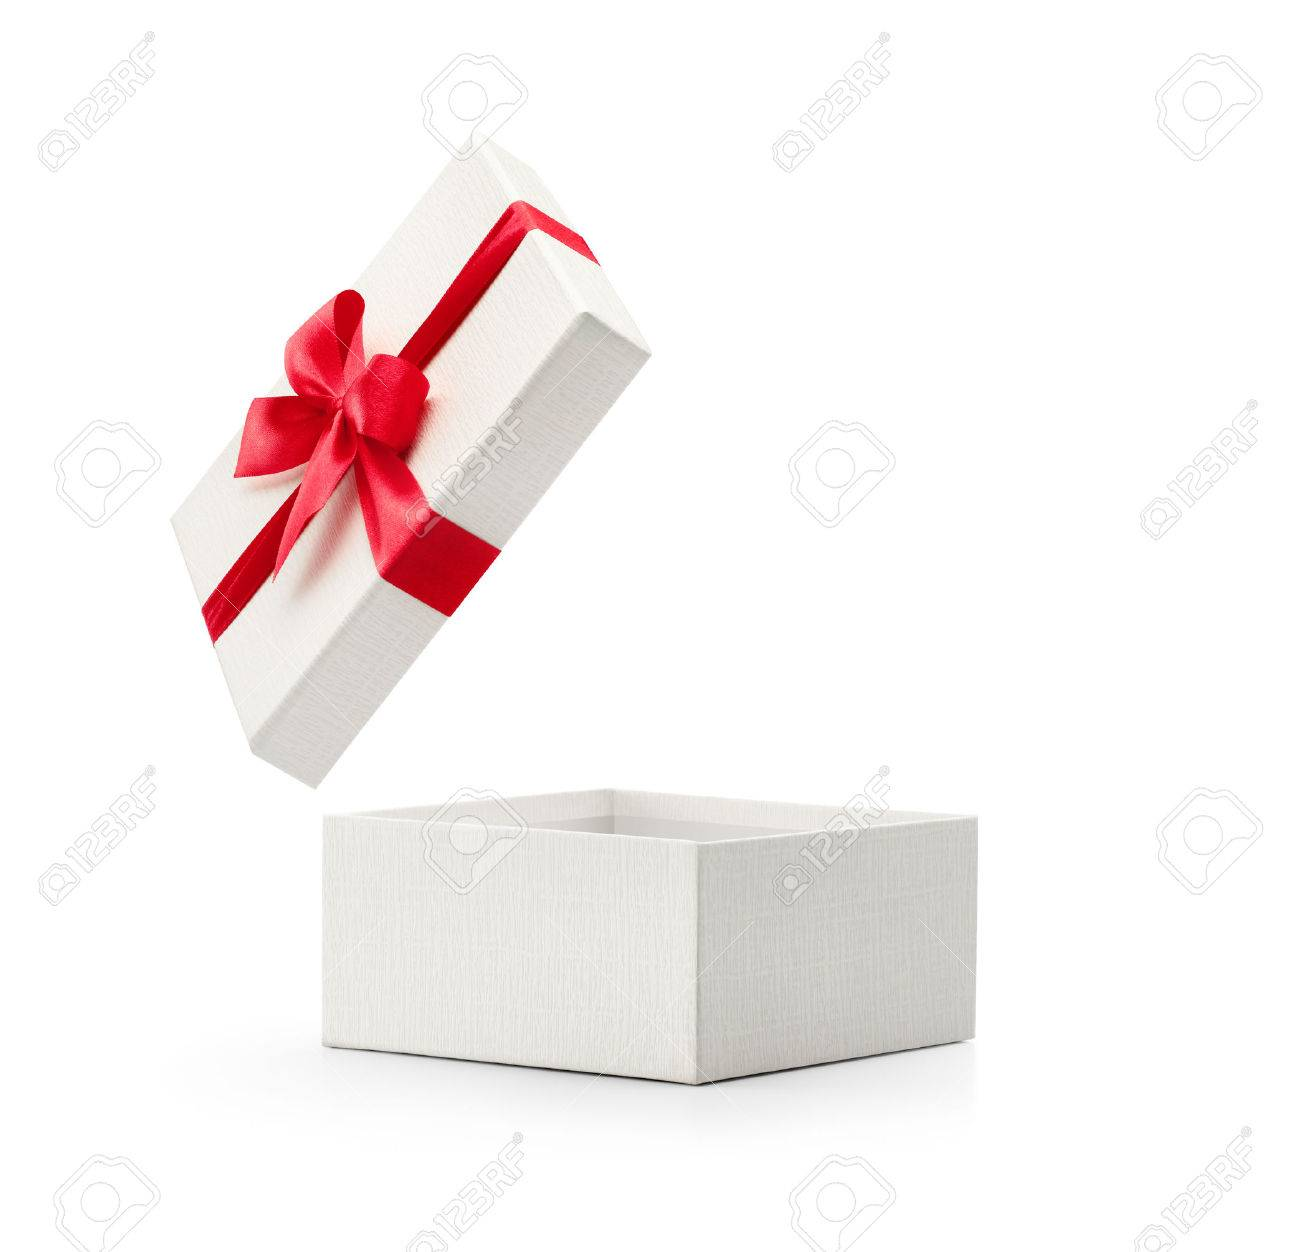 White gift box with red bow isolated on white background - Clipping path included - 50069507